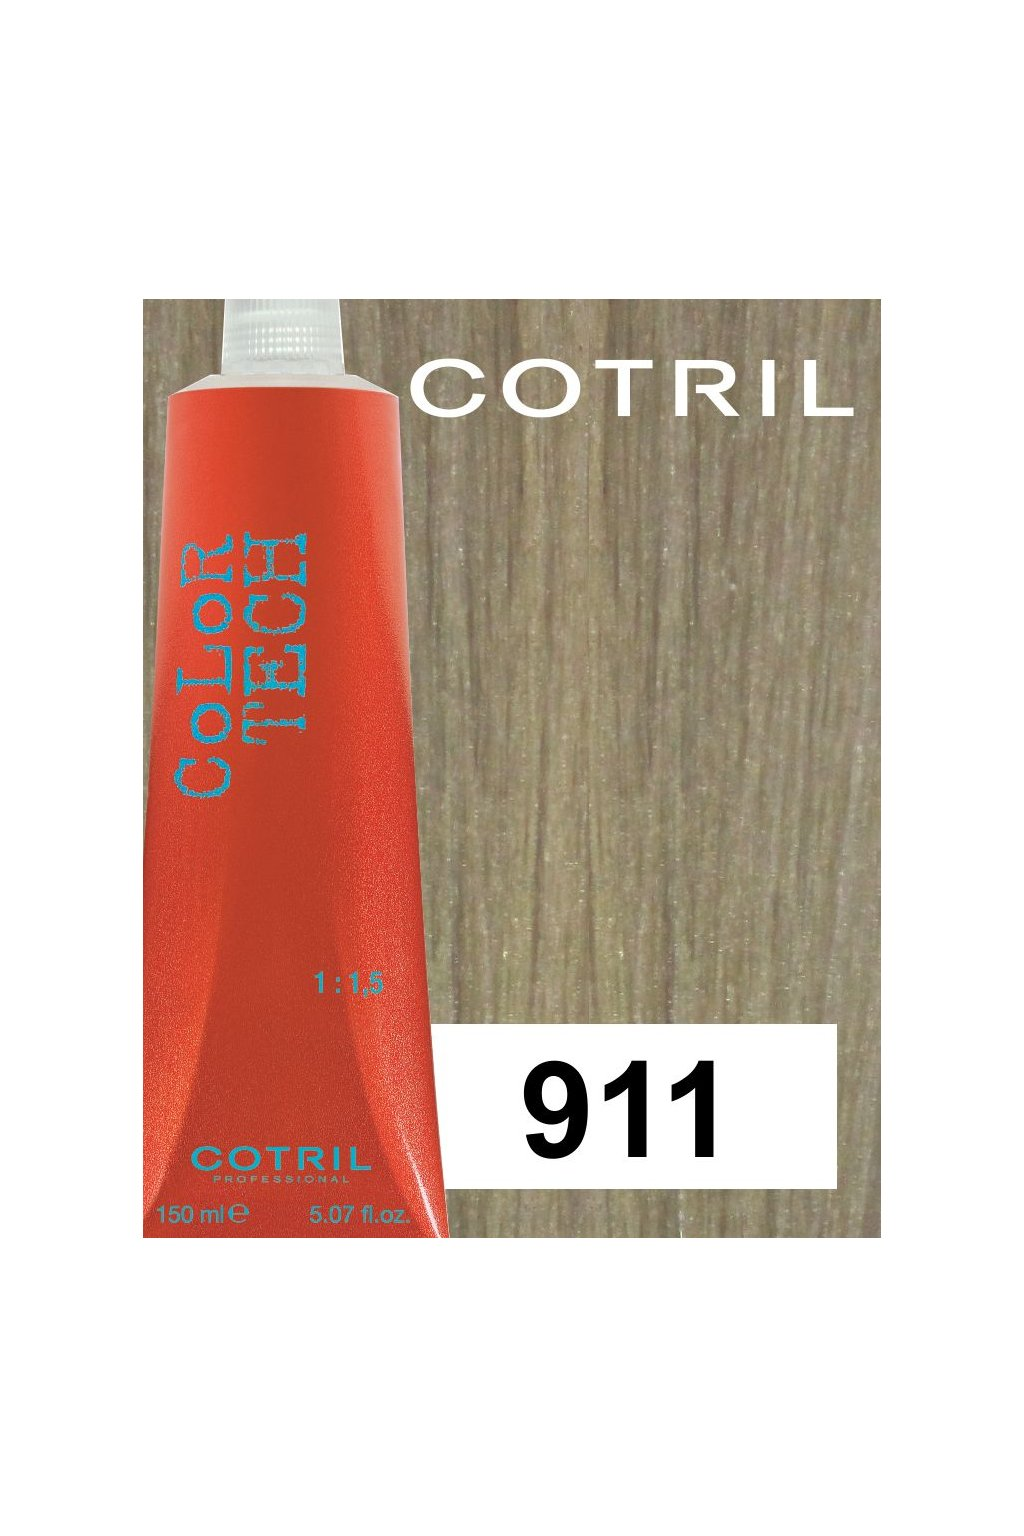 911 ct cotril